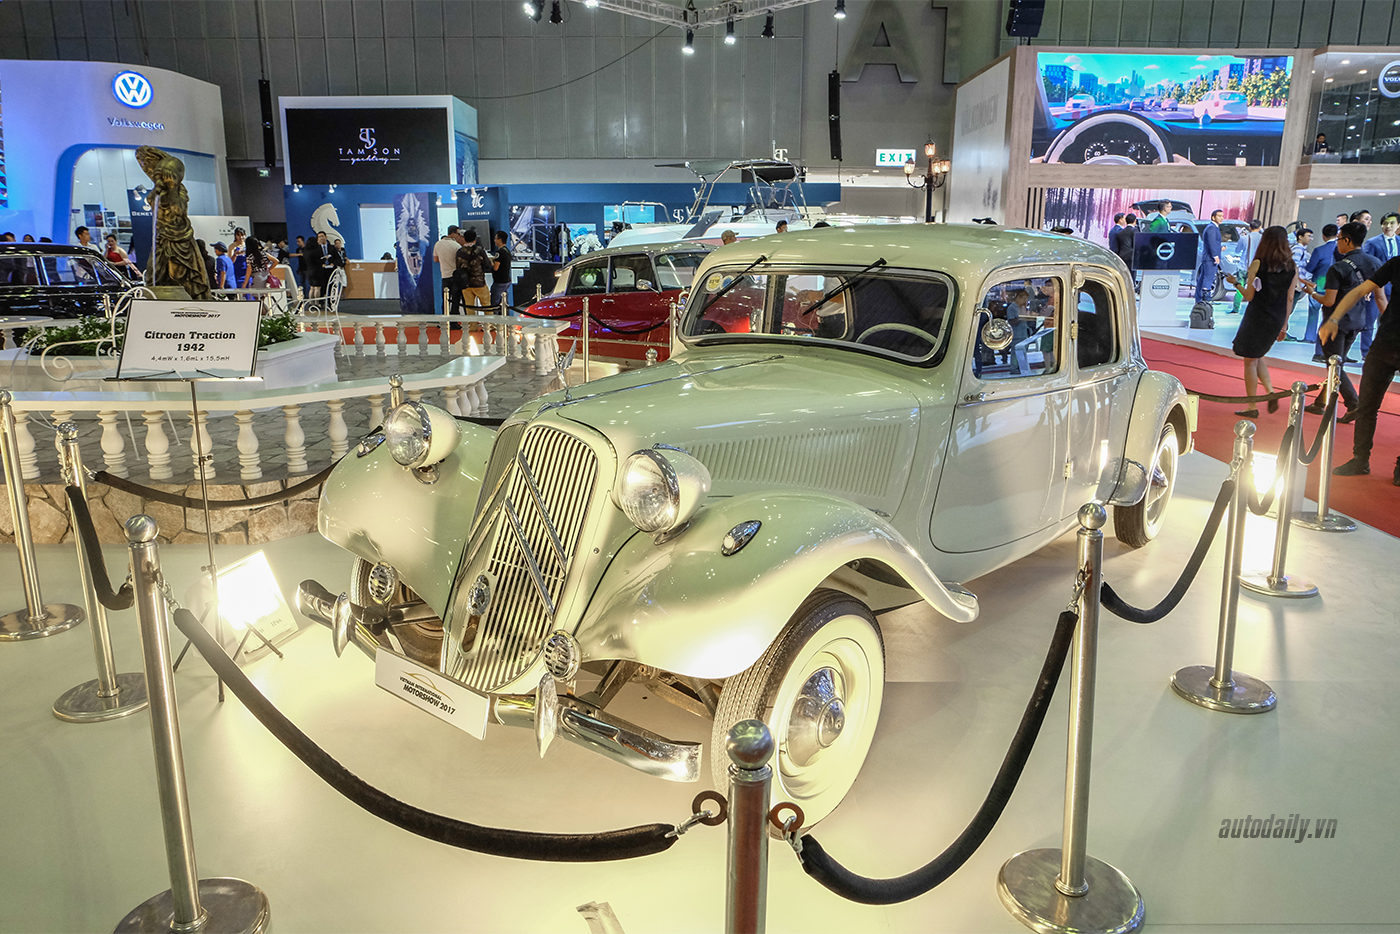 citroen-traction-1942-3.jpg